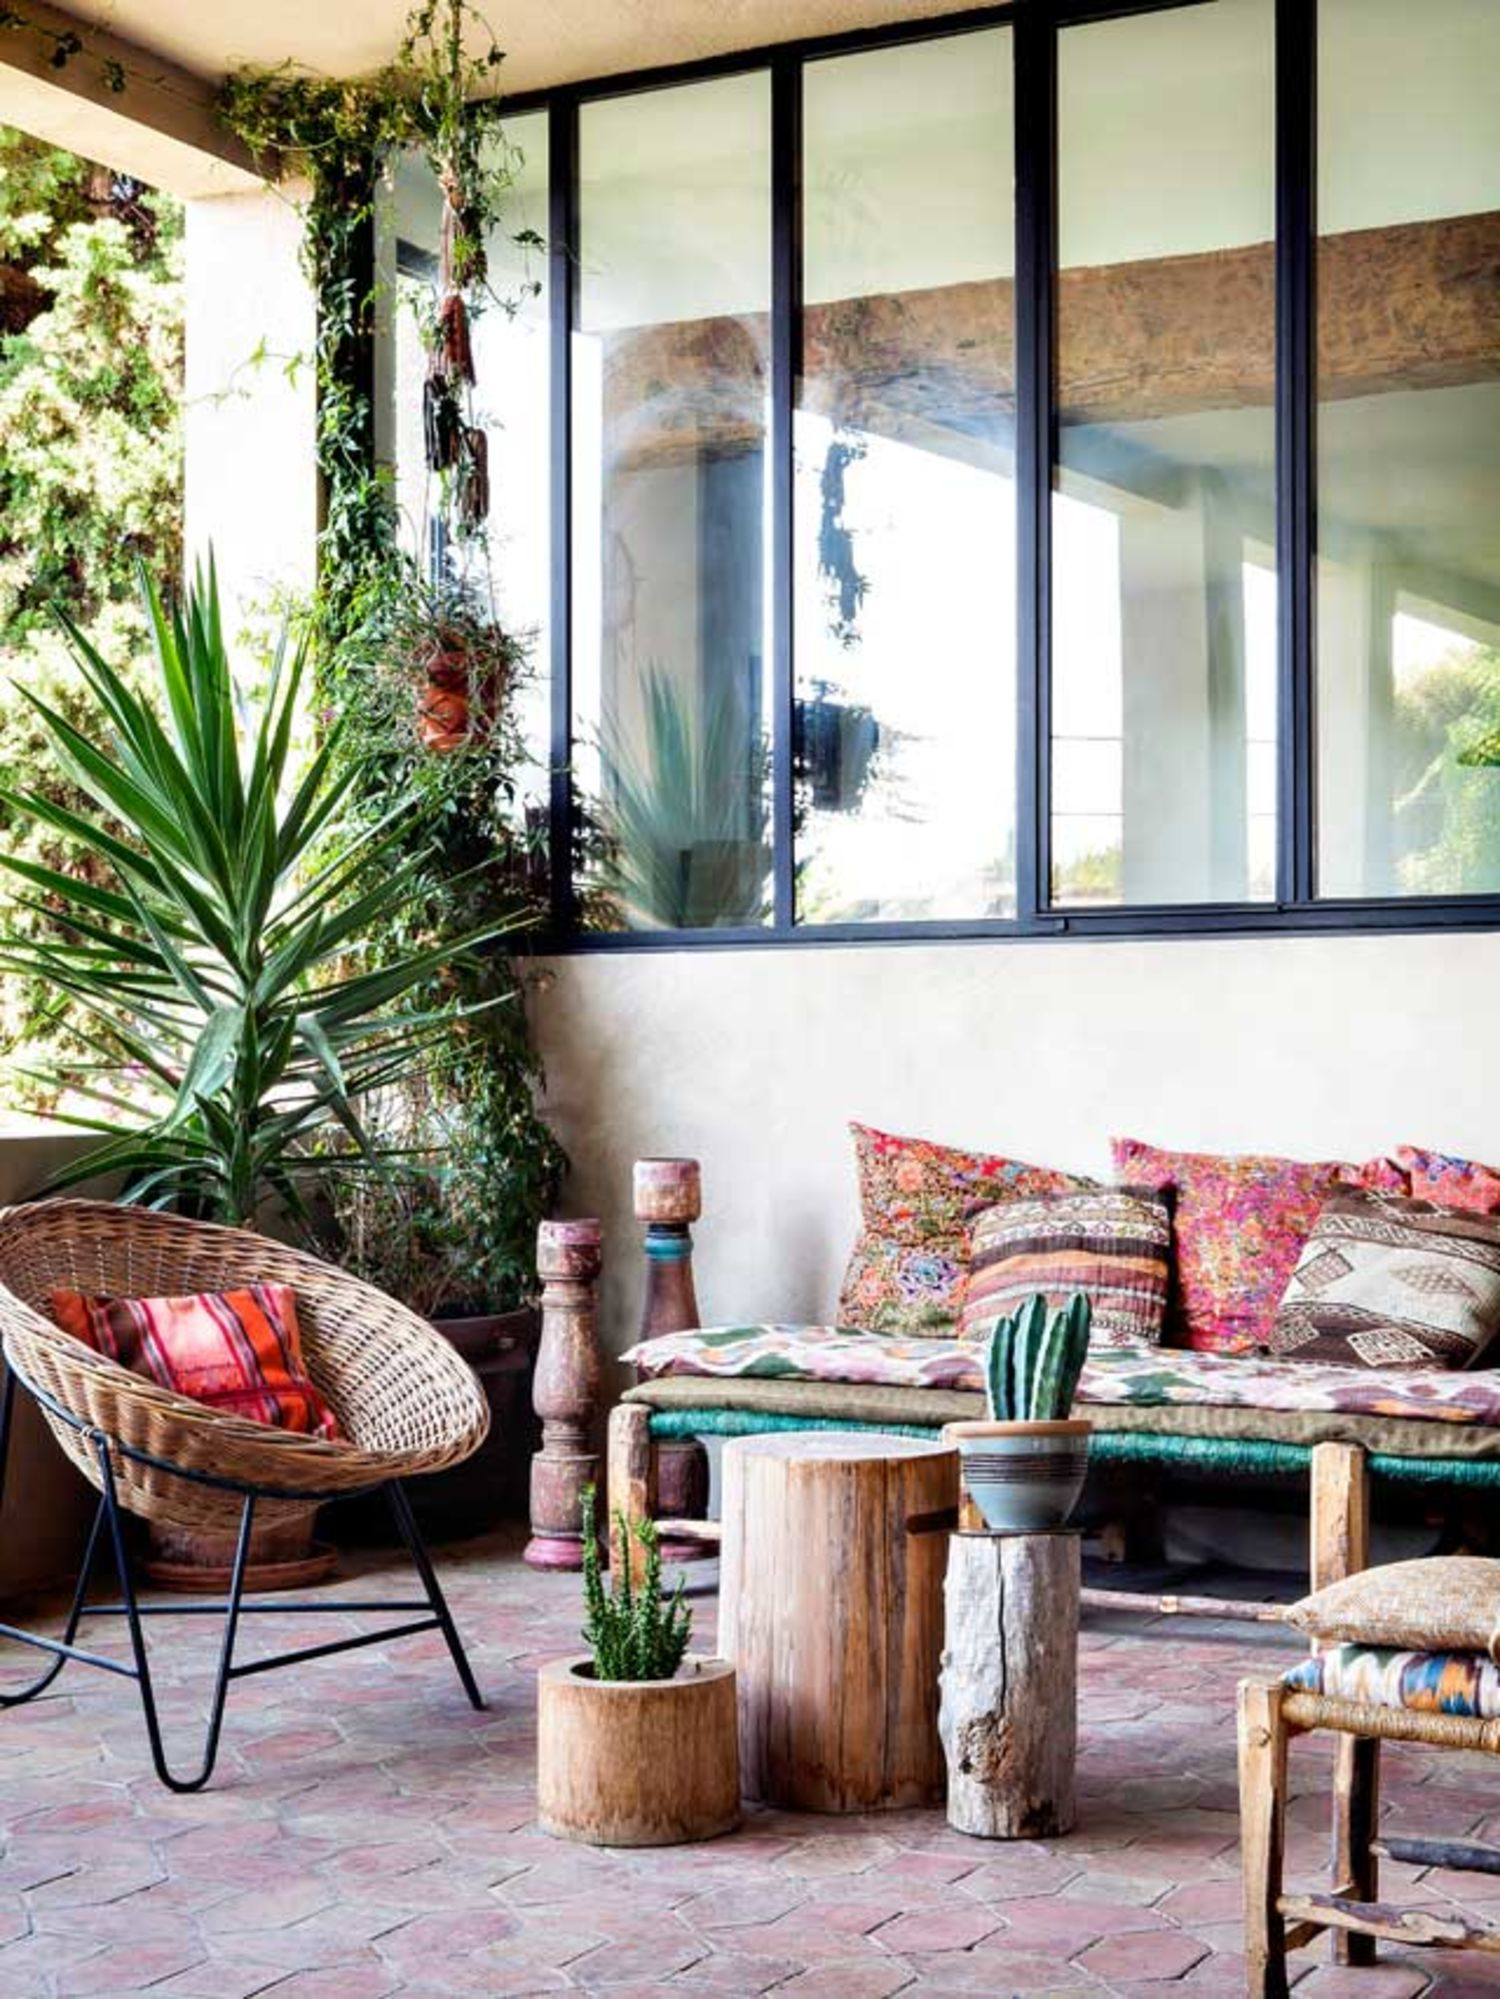 A Little Bohemian Inspiration for Your Outdoor Space